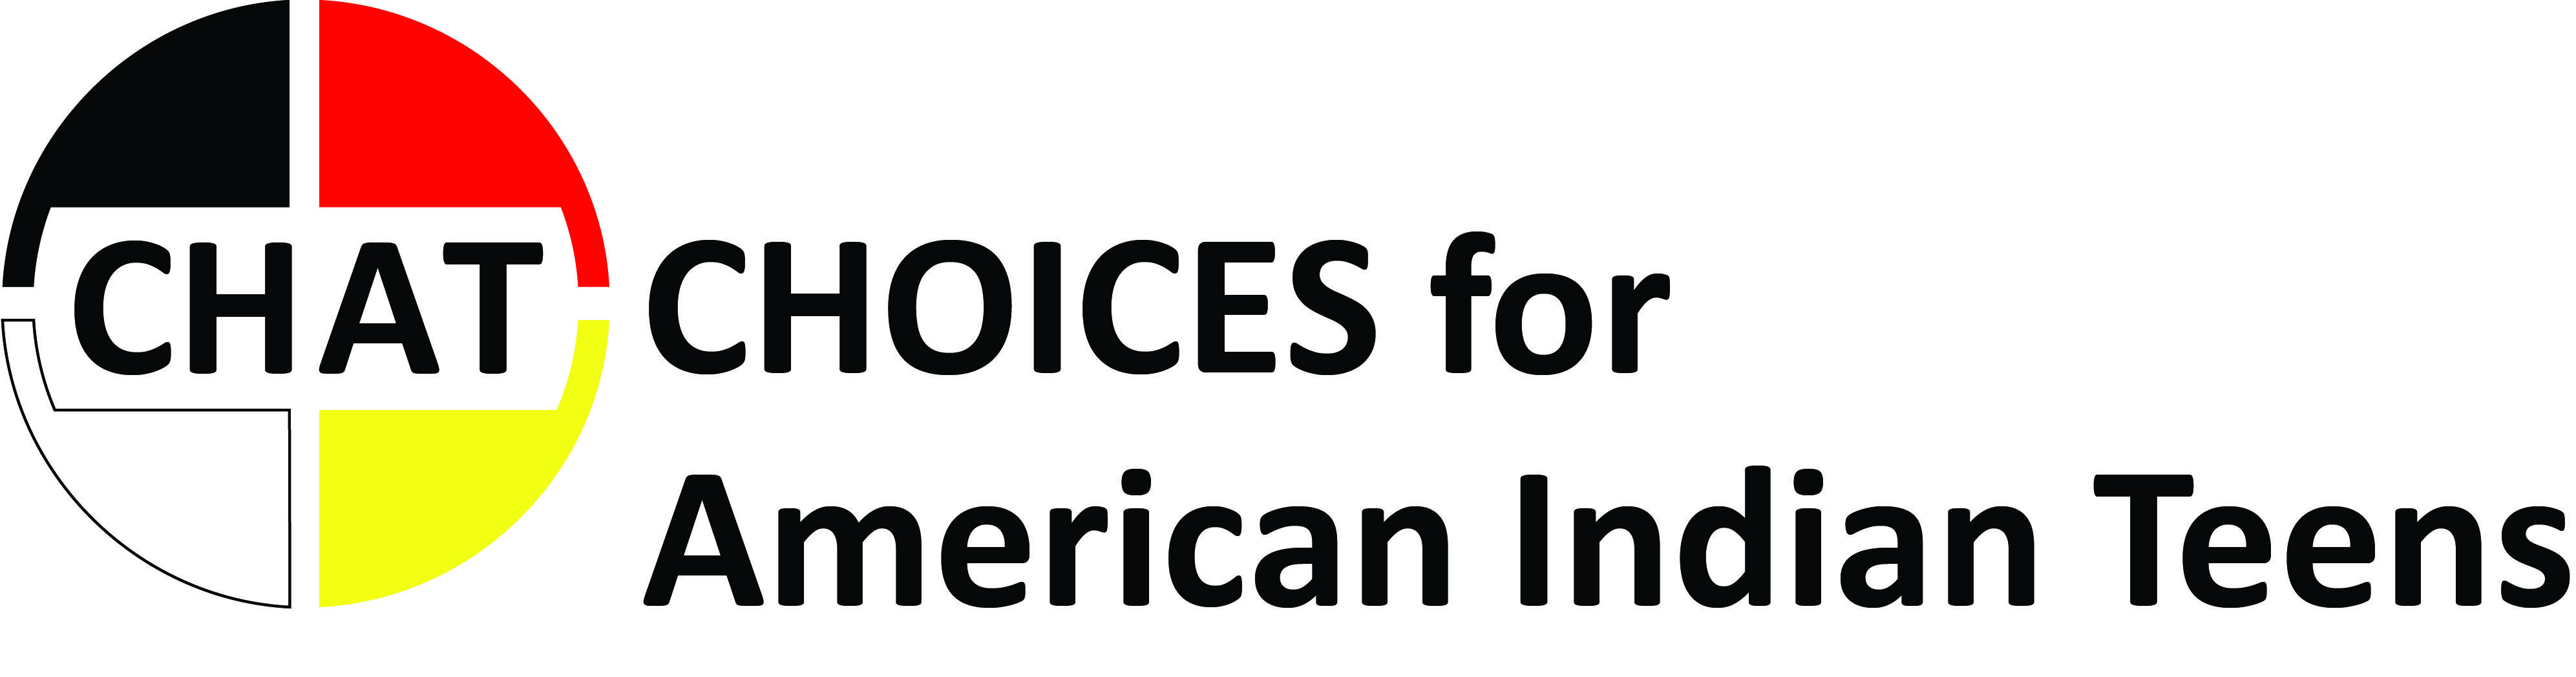 CHAT (CHOICES for American Indian Teens) intervention logo